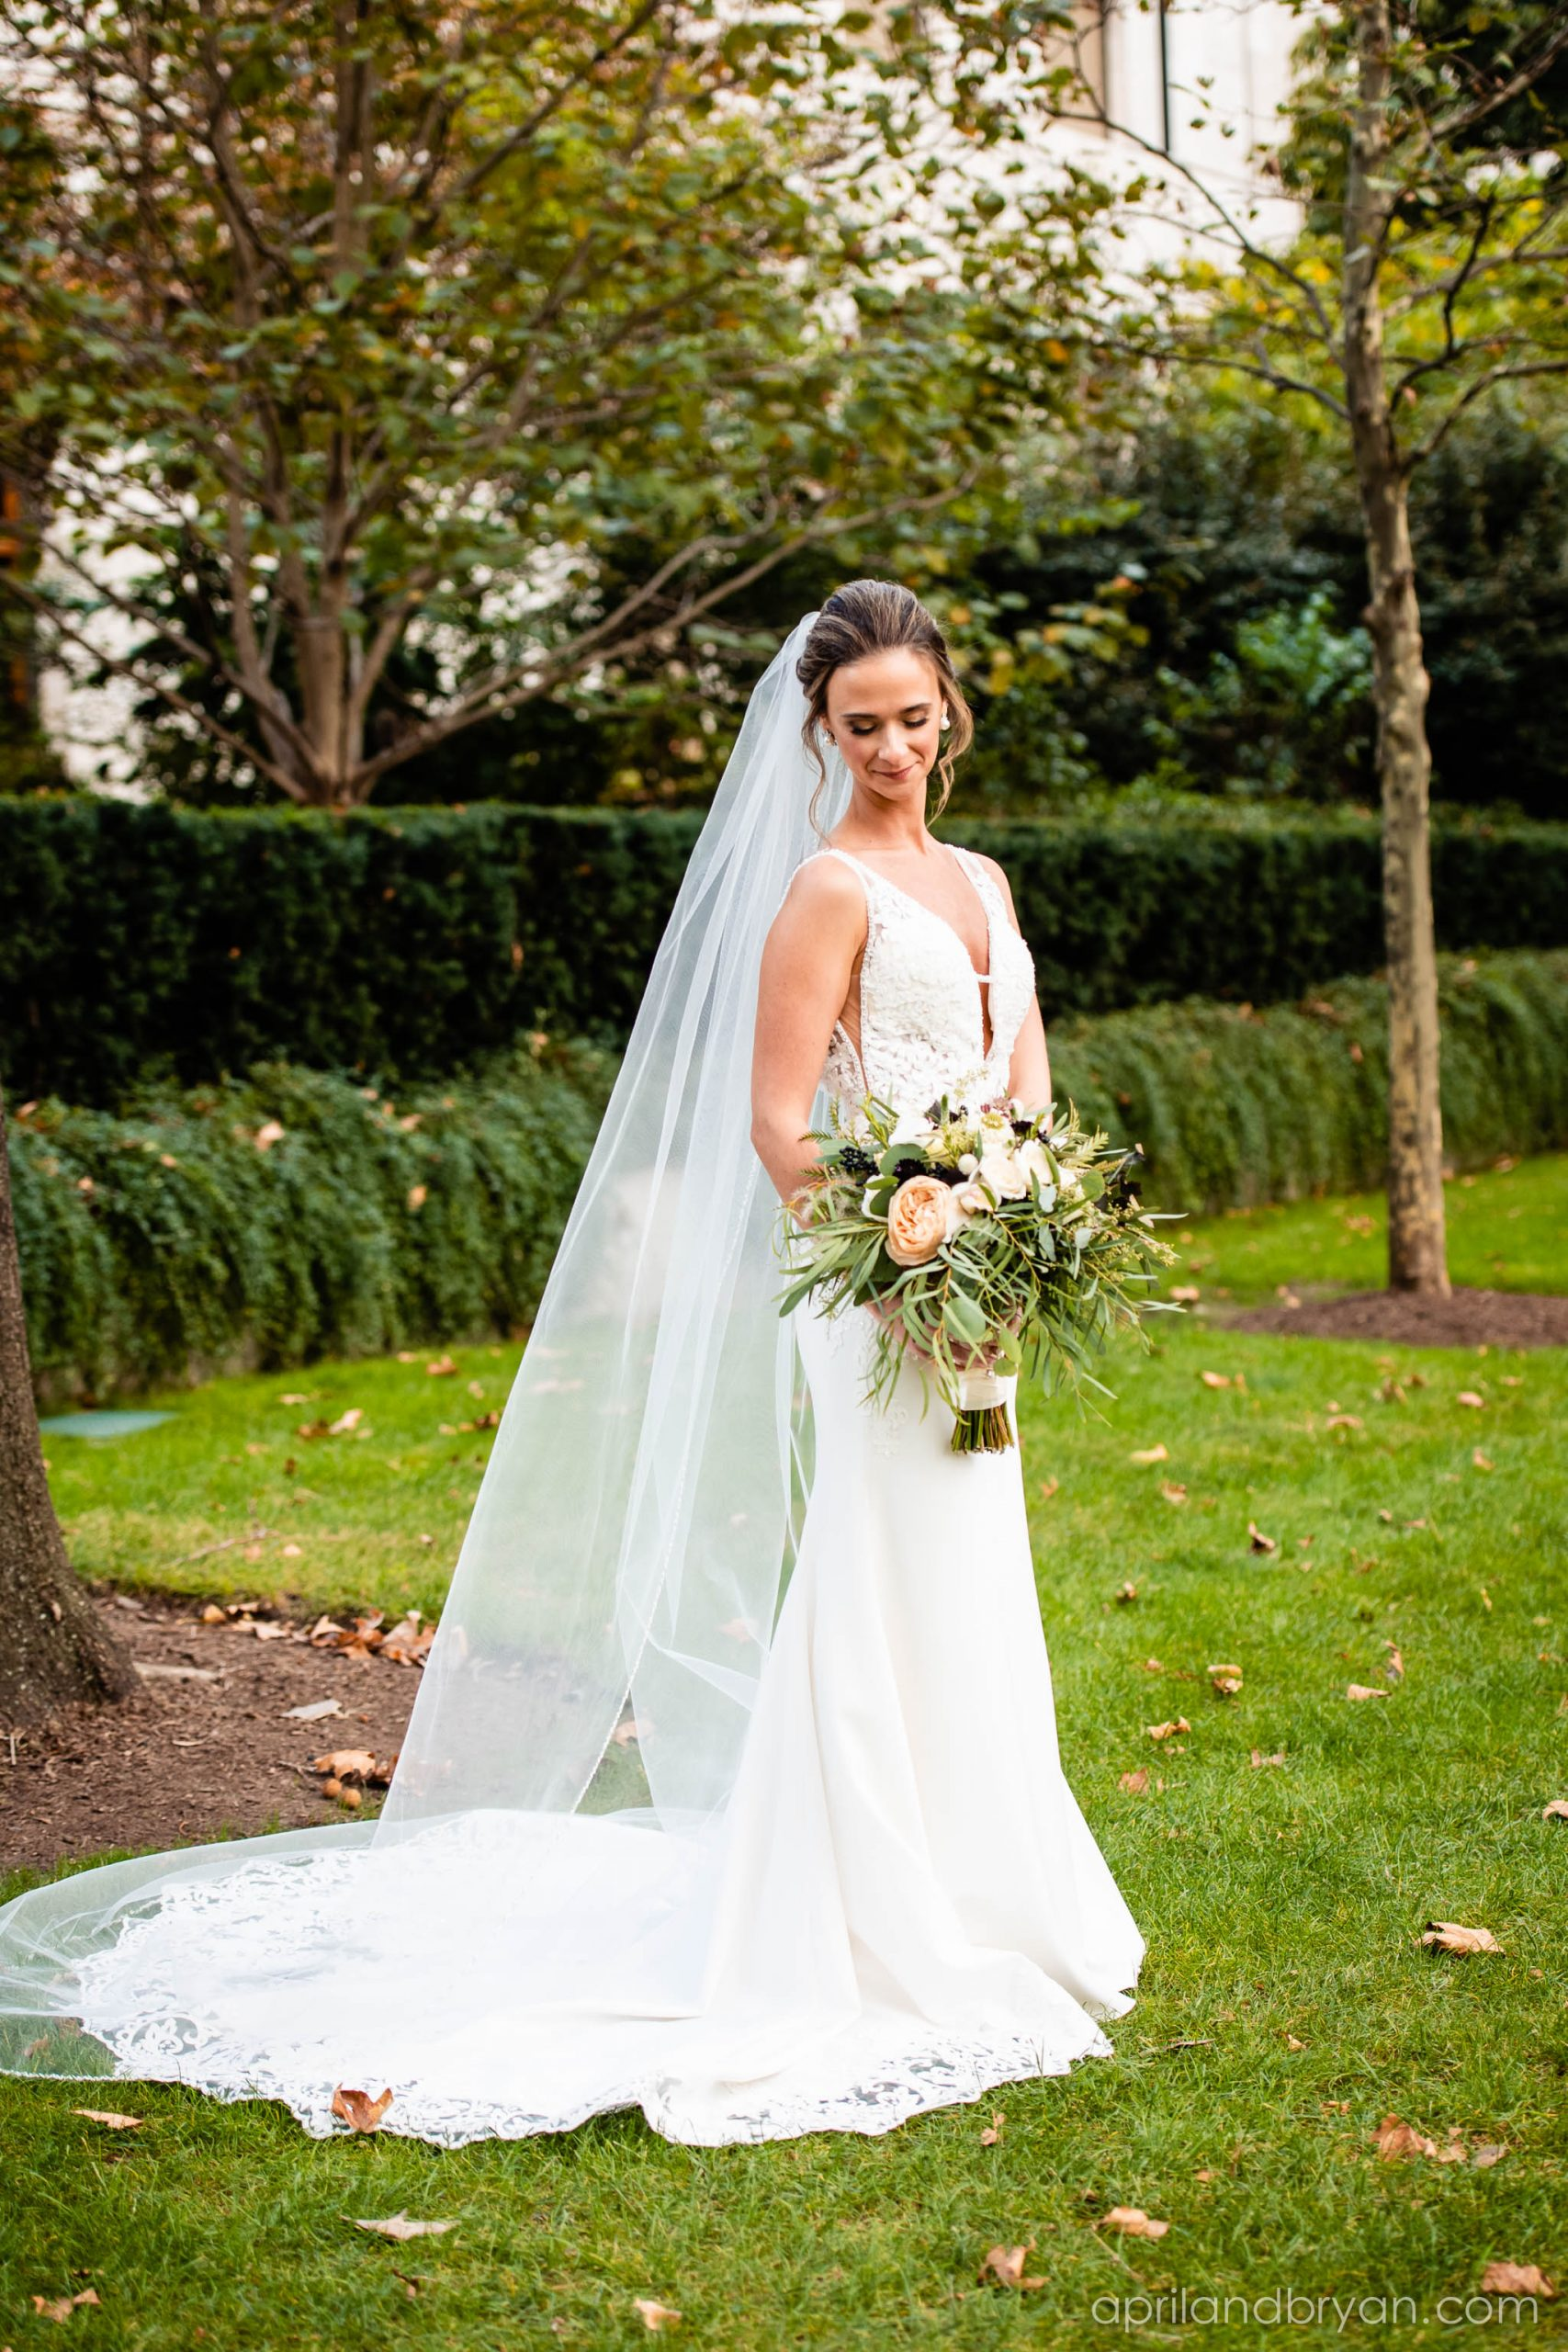 A blushing bride in the gardens of the Franklin Institute in Philadelphia. Shot by none other than April & Bryan Photography. Featured on Dream Weddings.